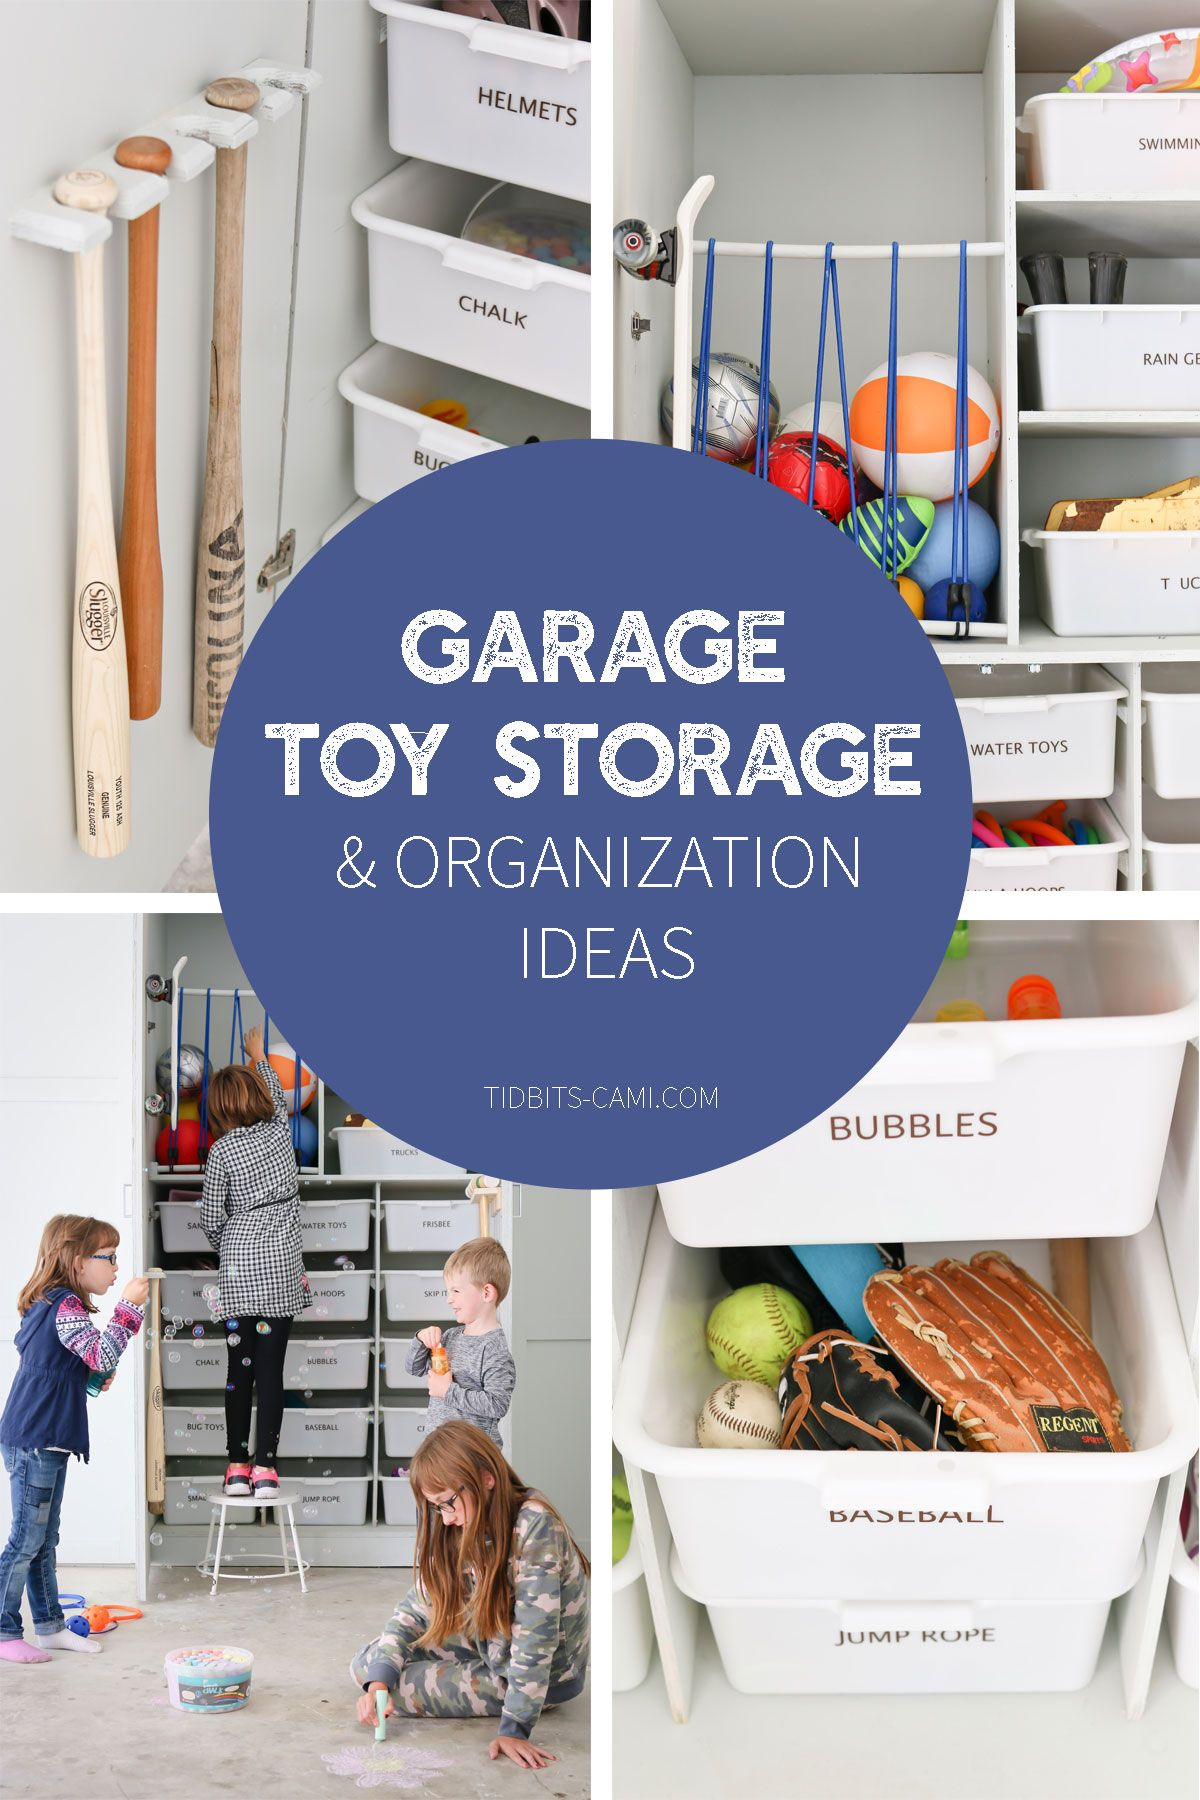 Garage Toy Storage And Organization Ideas Contain All Those Outdoor Toys With These Brilliant Camitidbits Garageorganization